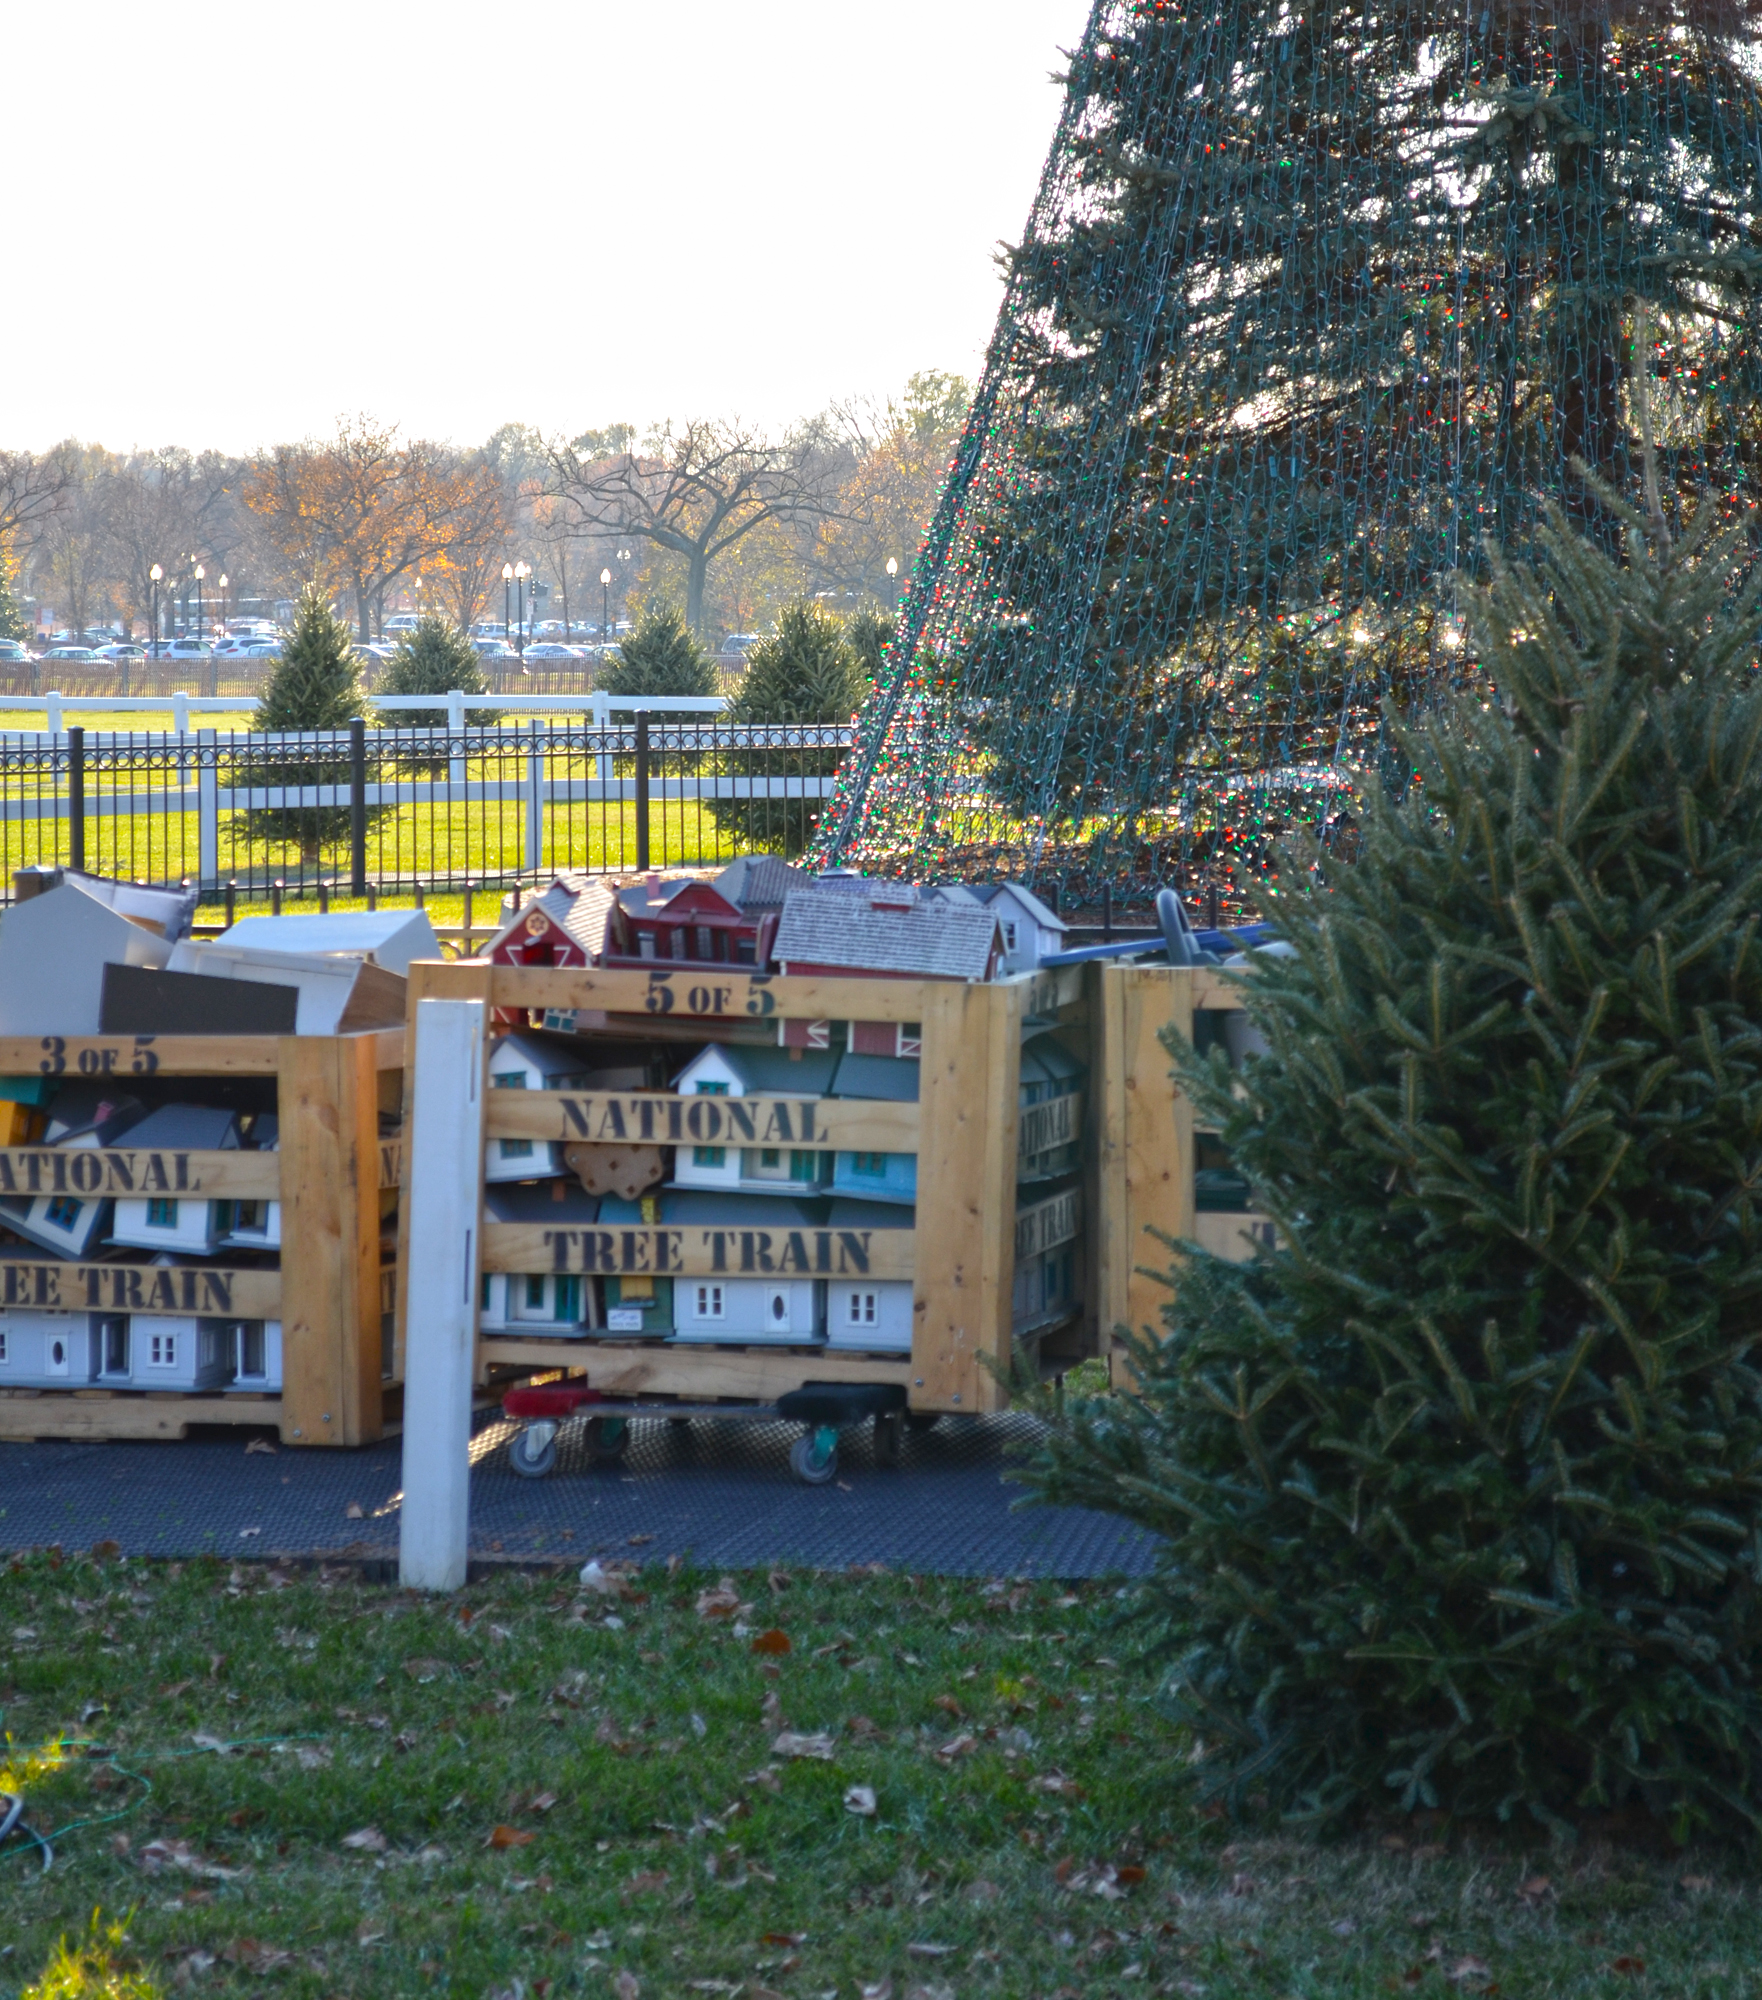 The model railroad train is ready to be unpacked and set up at the base of the 2012 U.S. National Christmas Tree. An undecorated